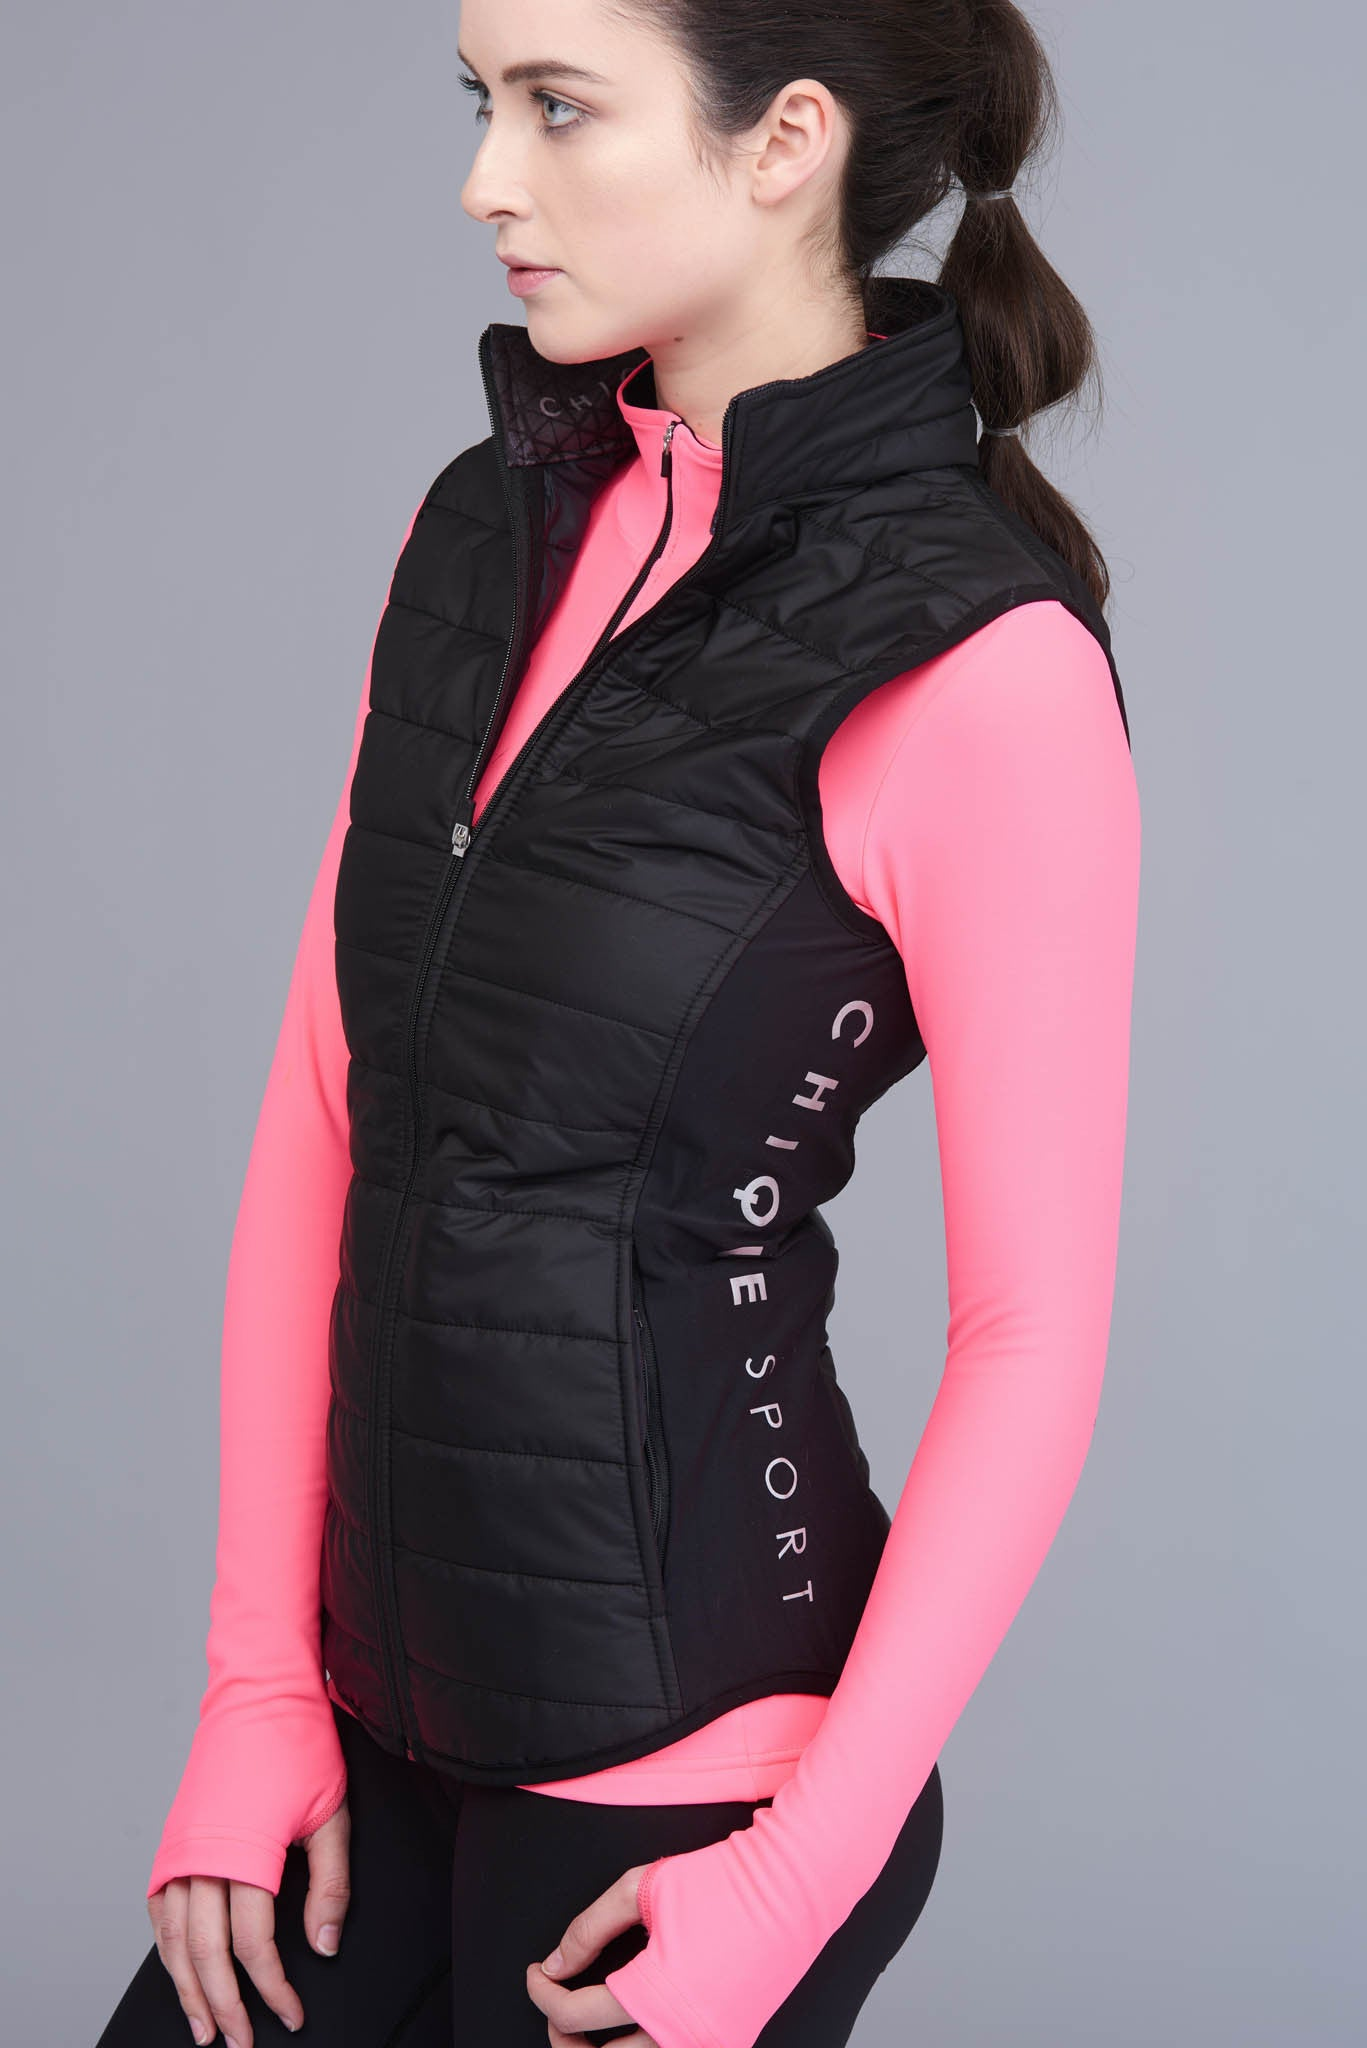 Train to Win Bodywarmer-9